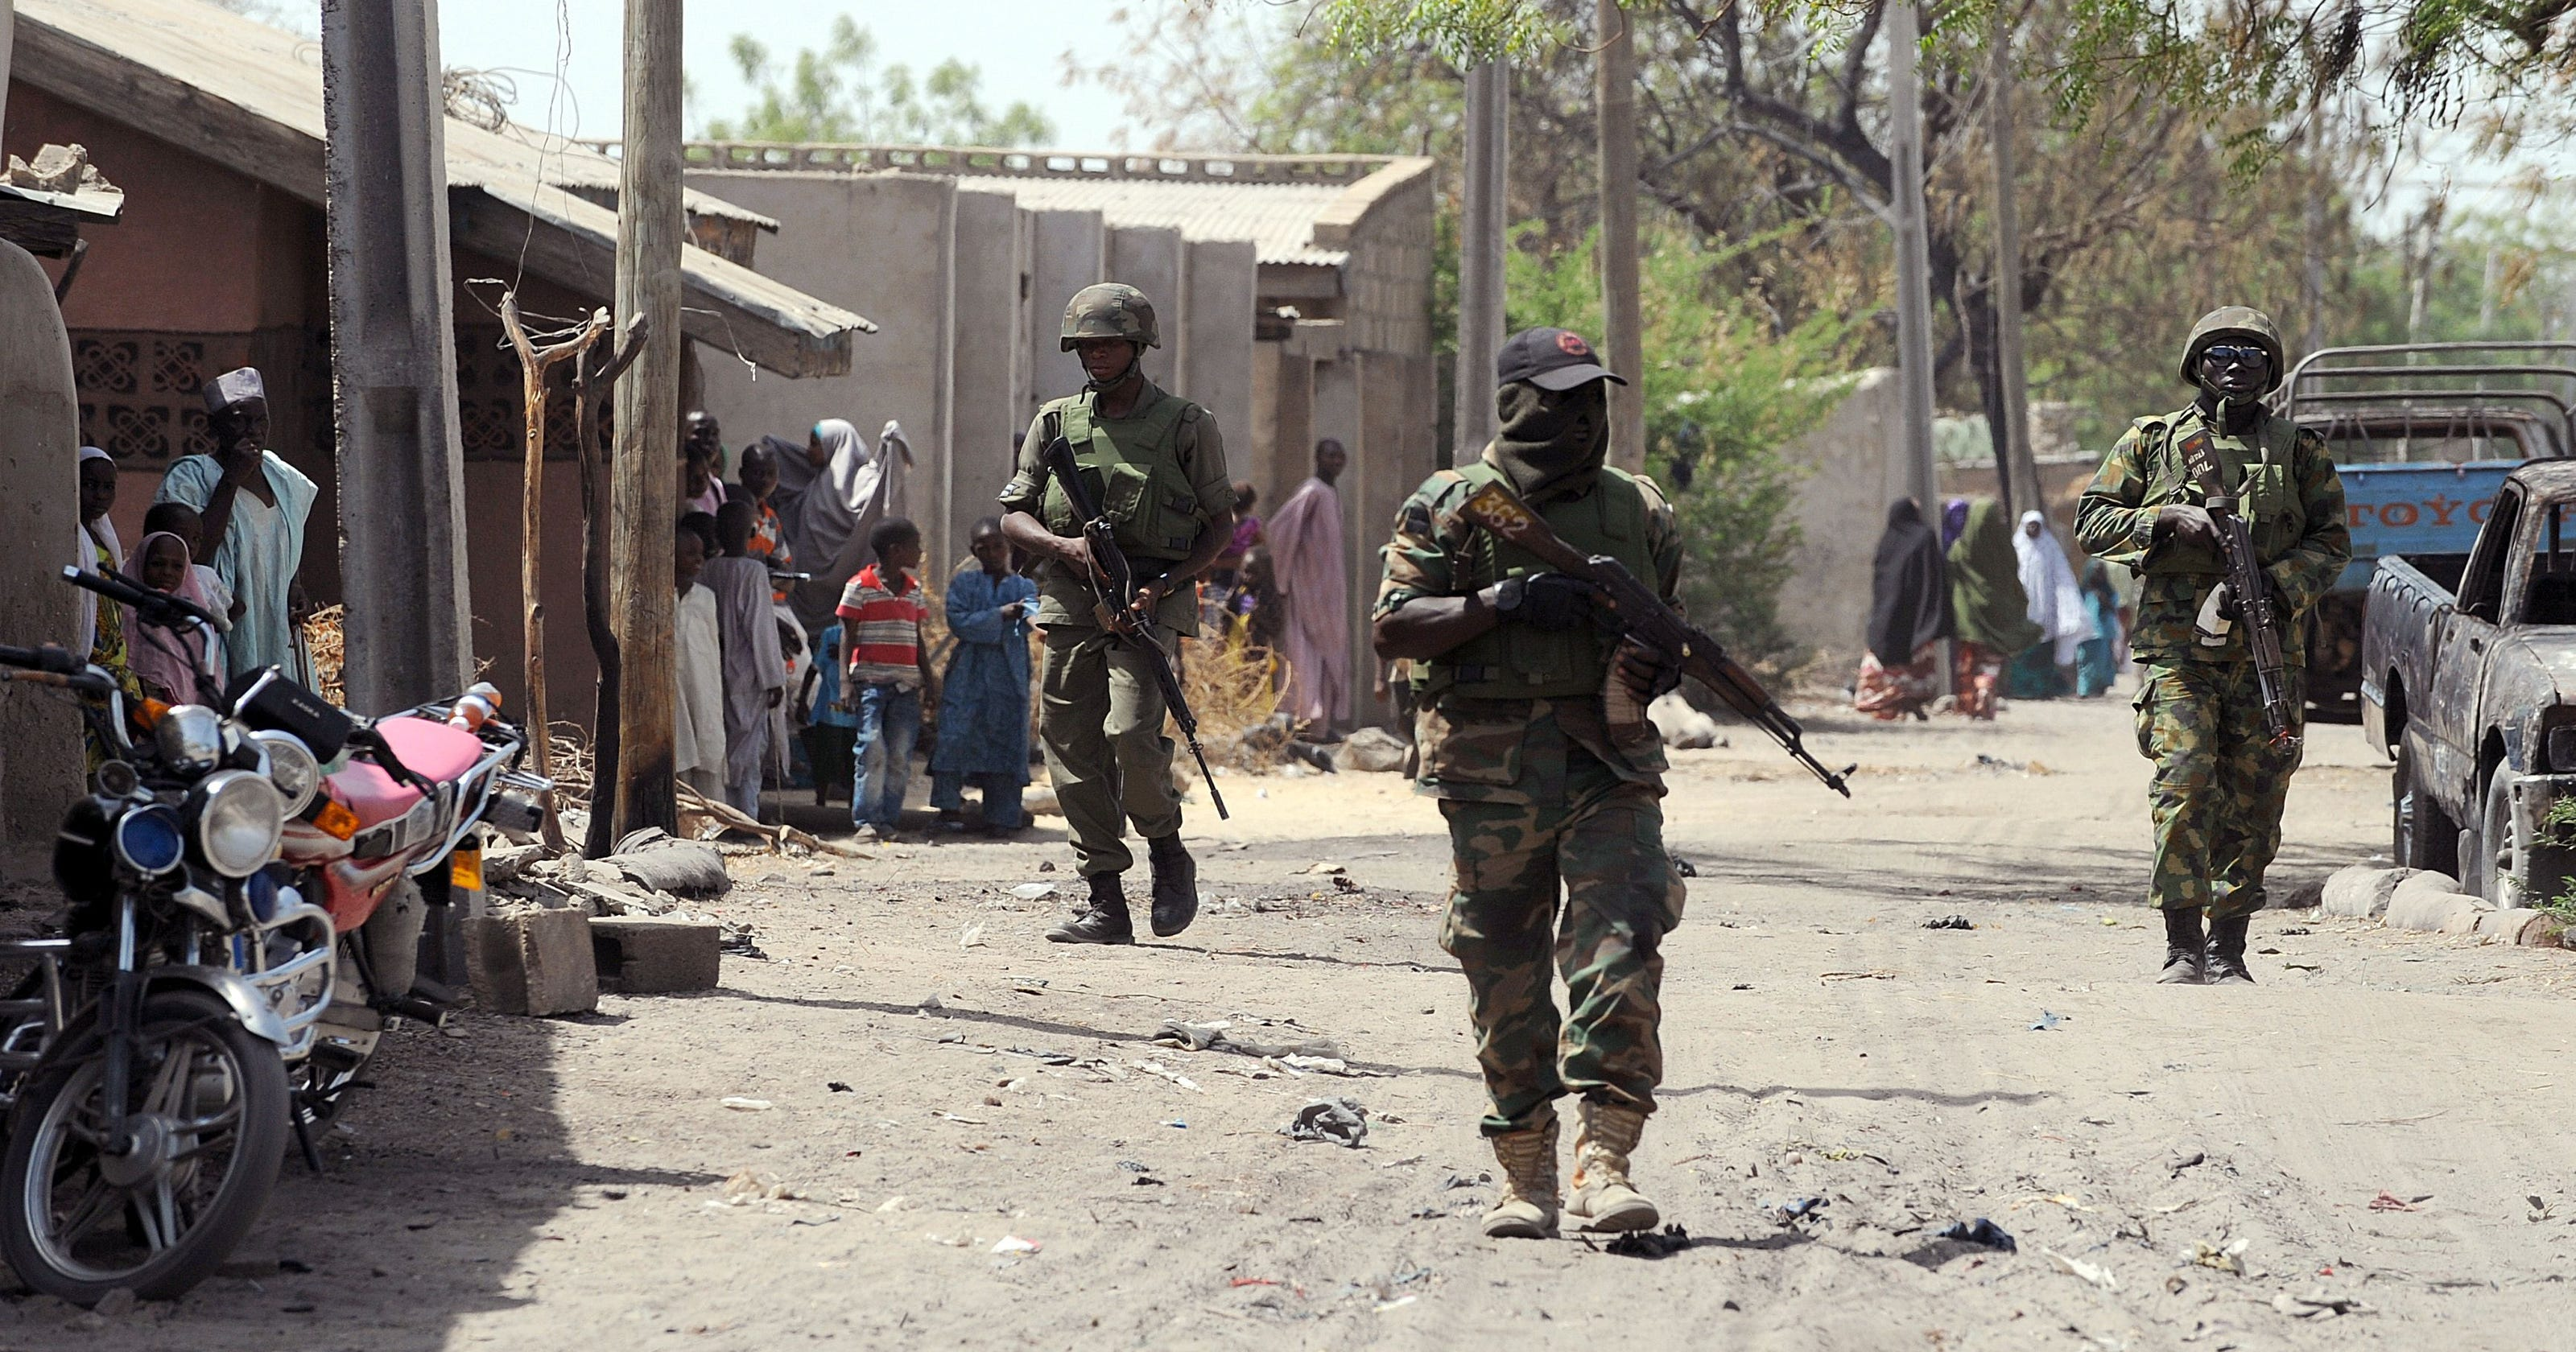 Videos show Nigerian army abuses, Amnesty report says